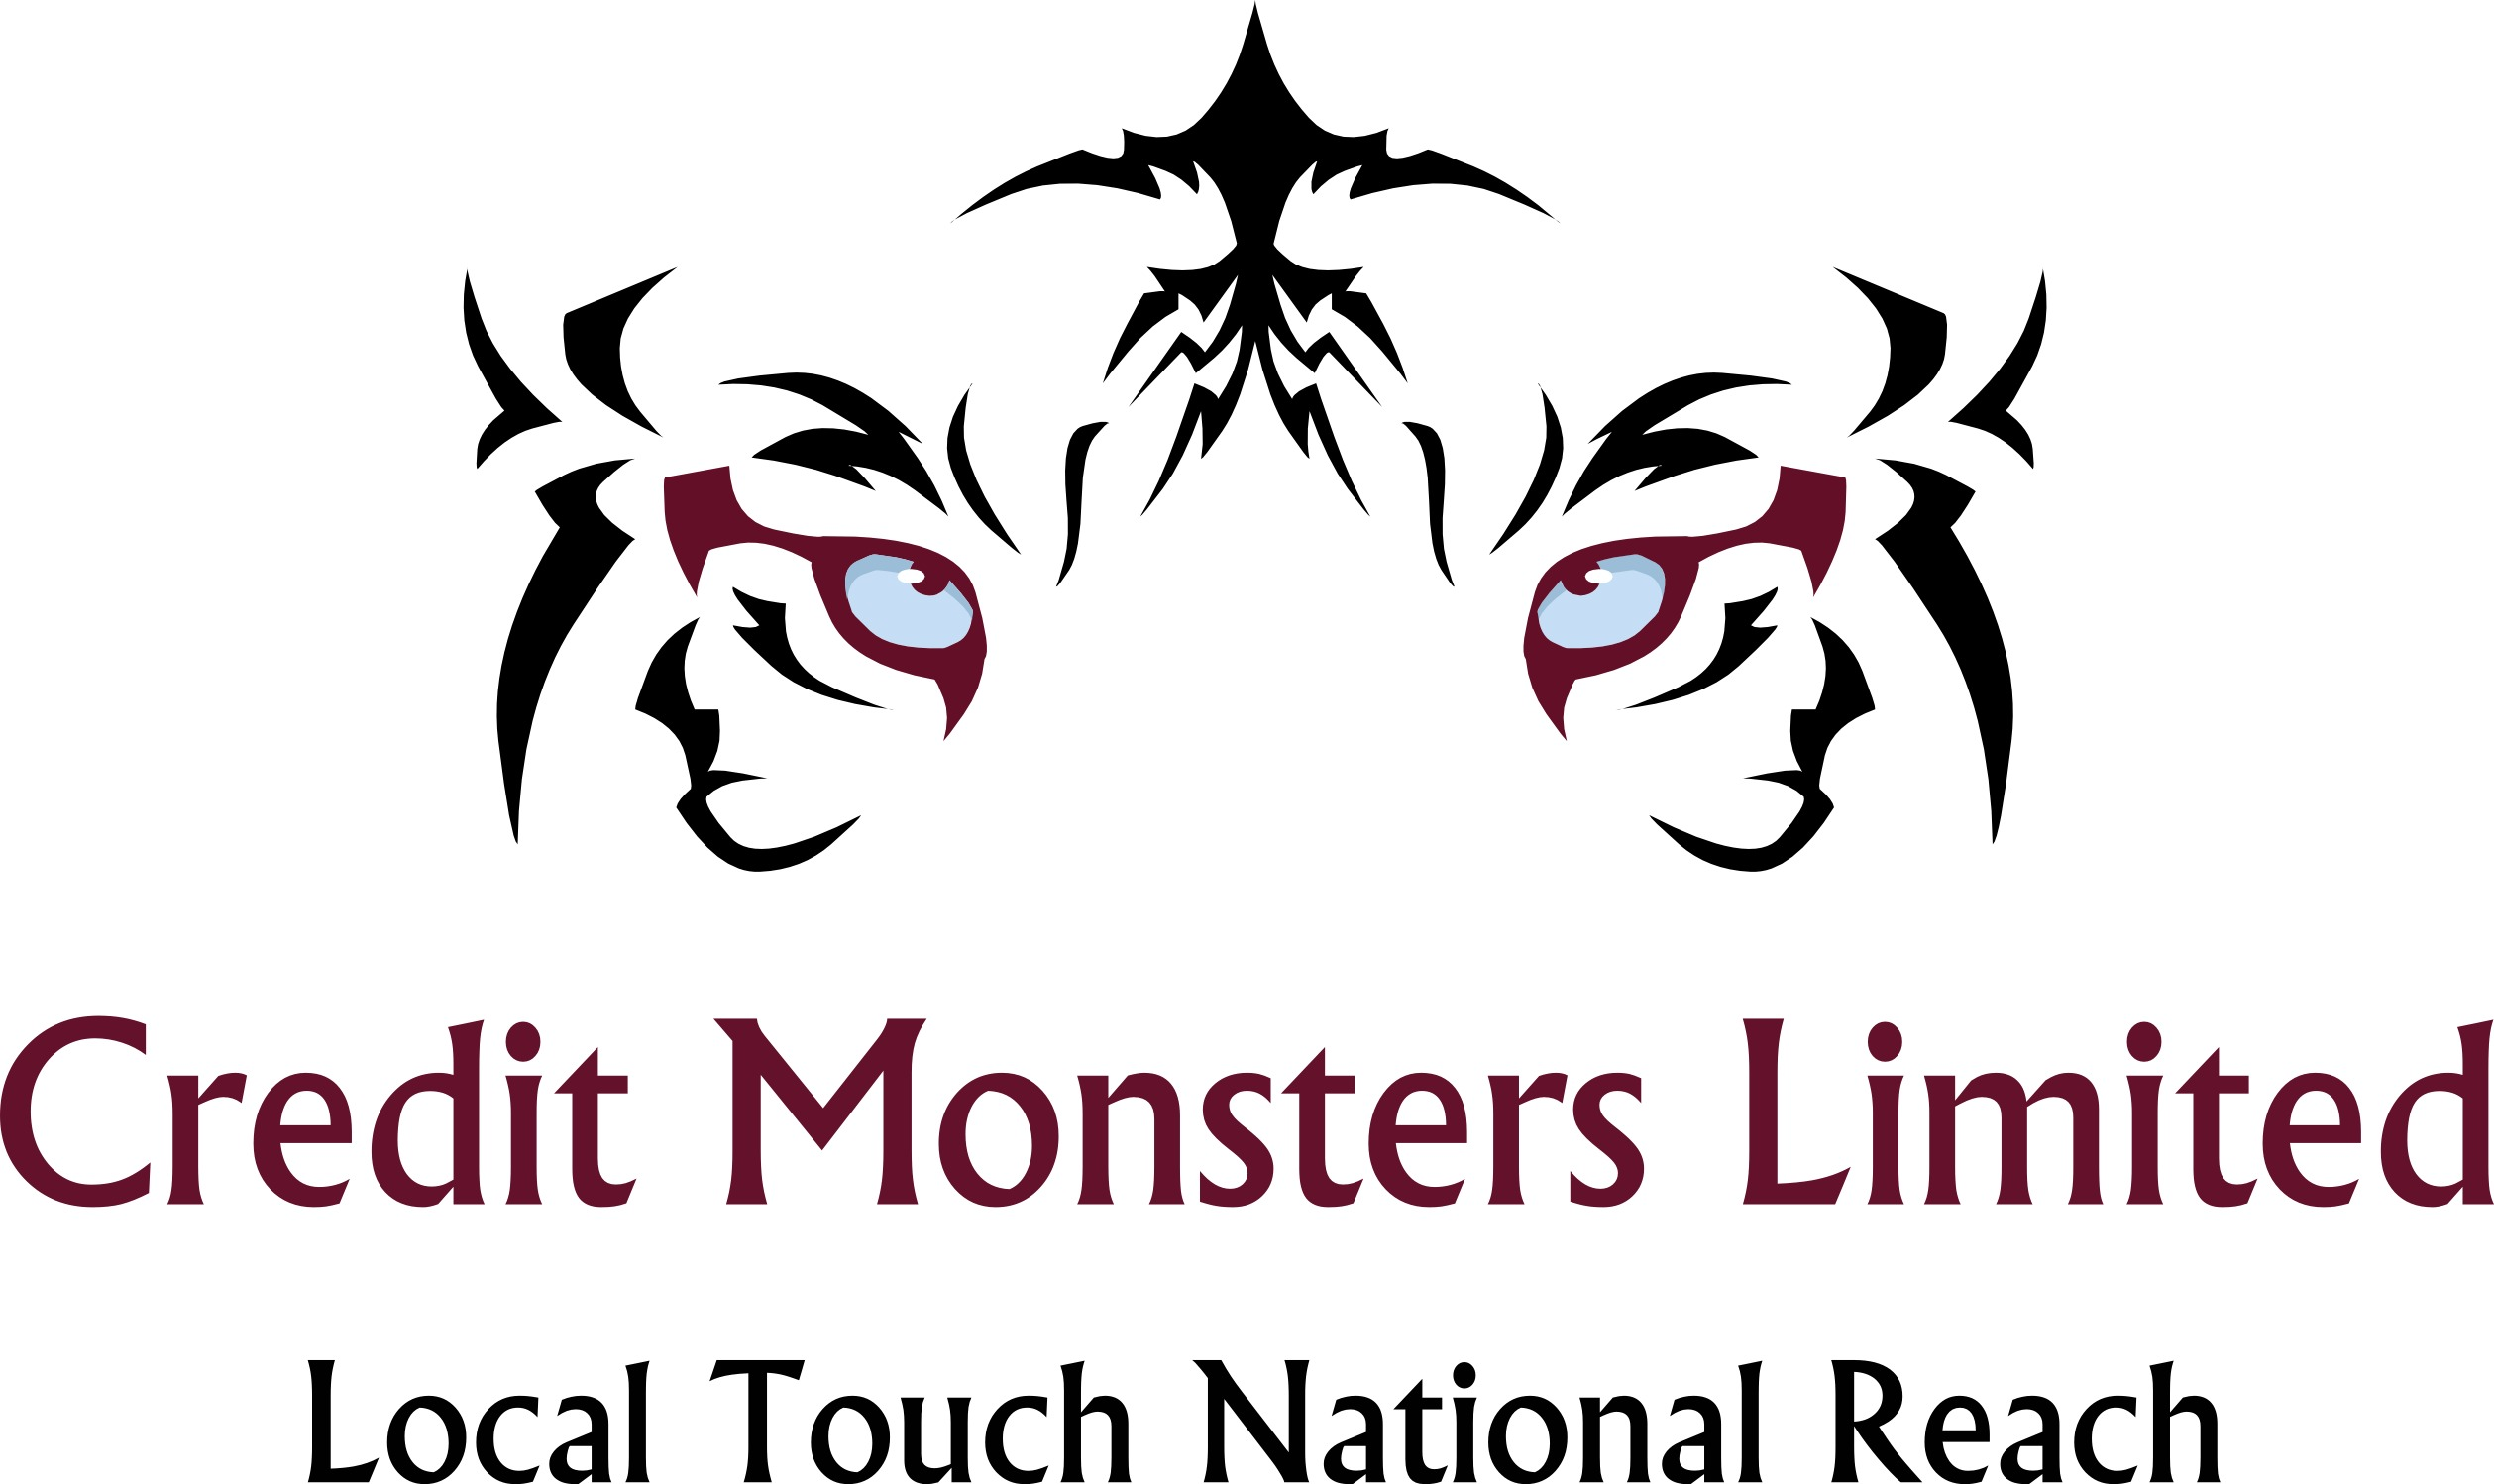 Credit Monsters Limited